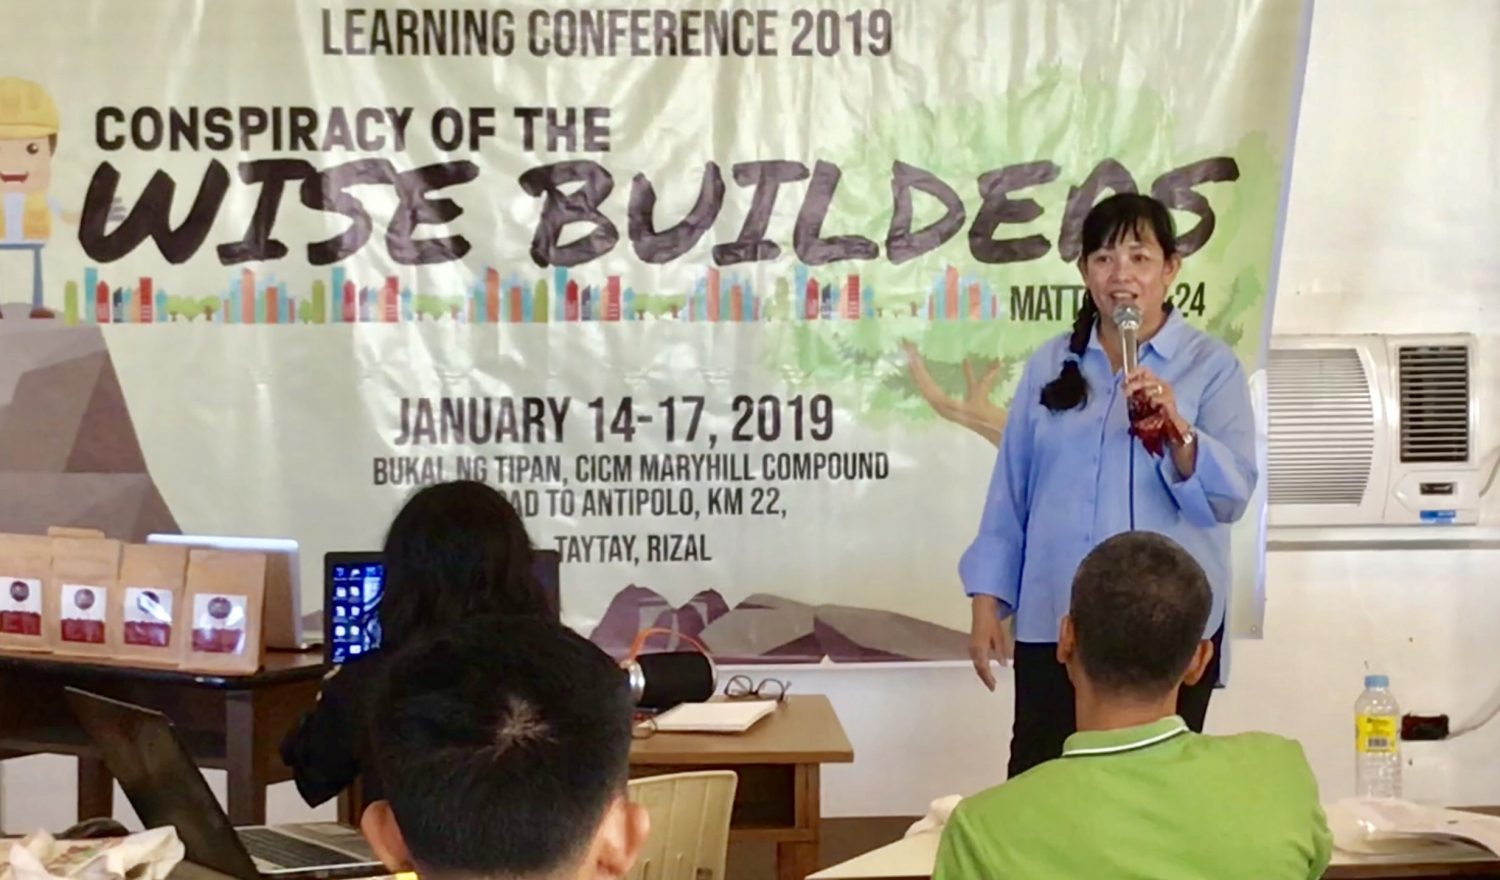 JOJI SERVES AS PLENARY SPEAKER AT THE 2019 LEARNING CONFERENCE